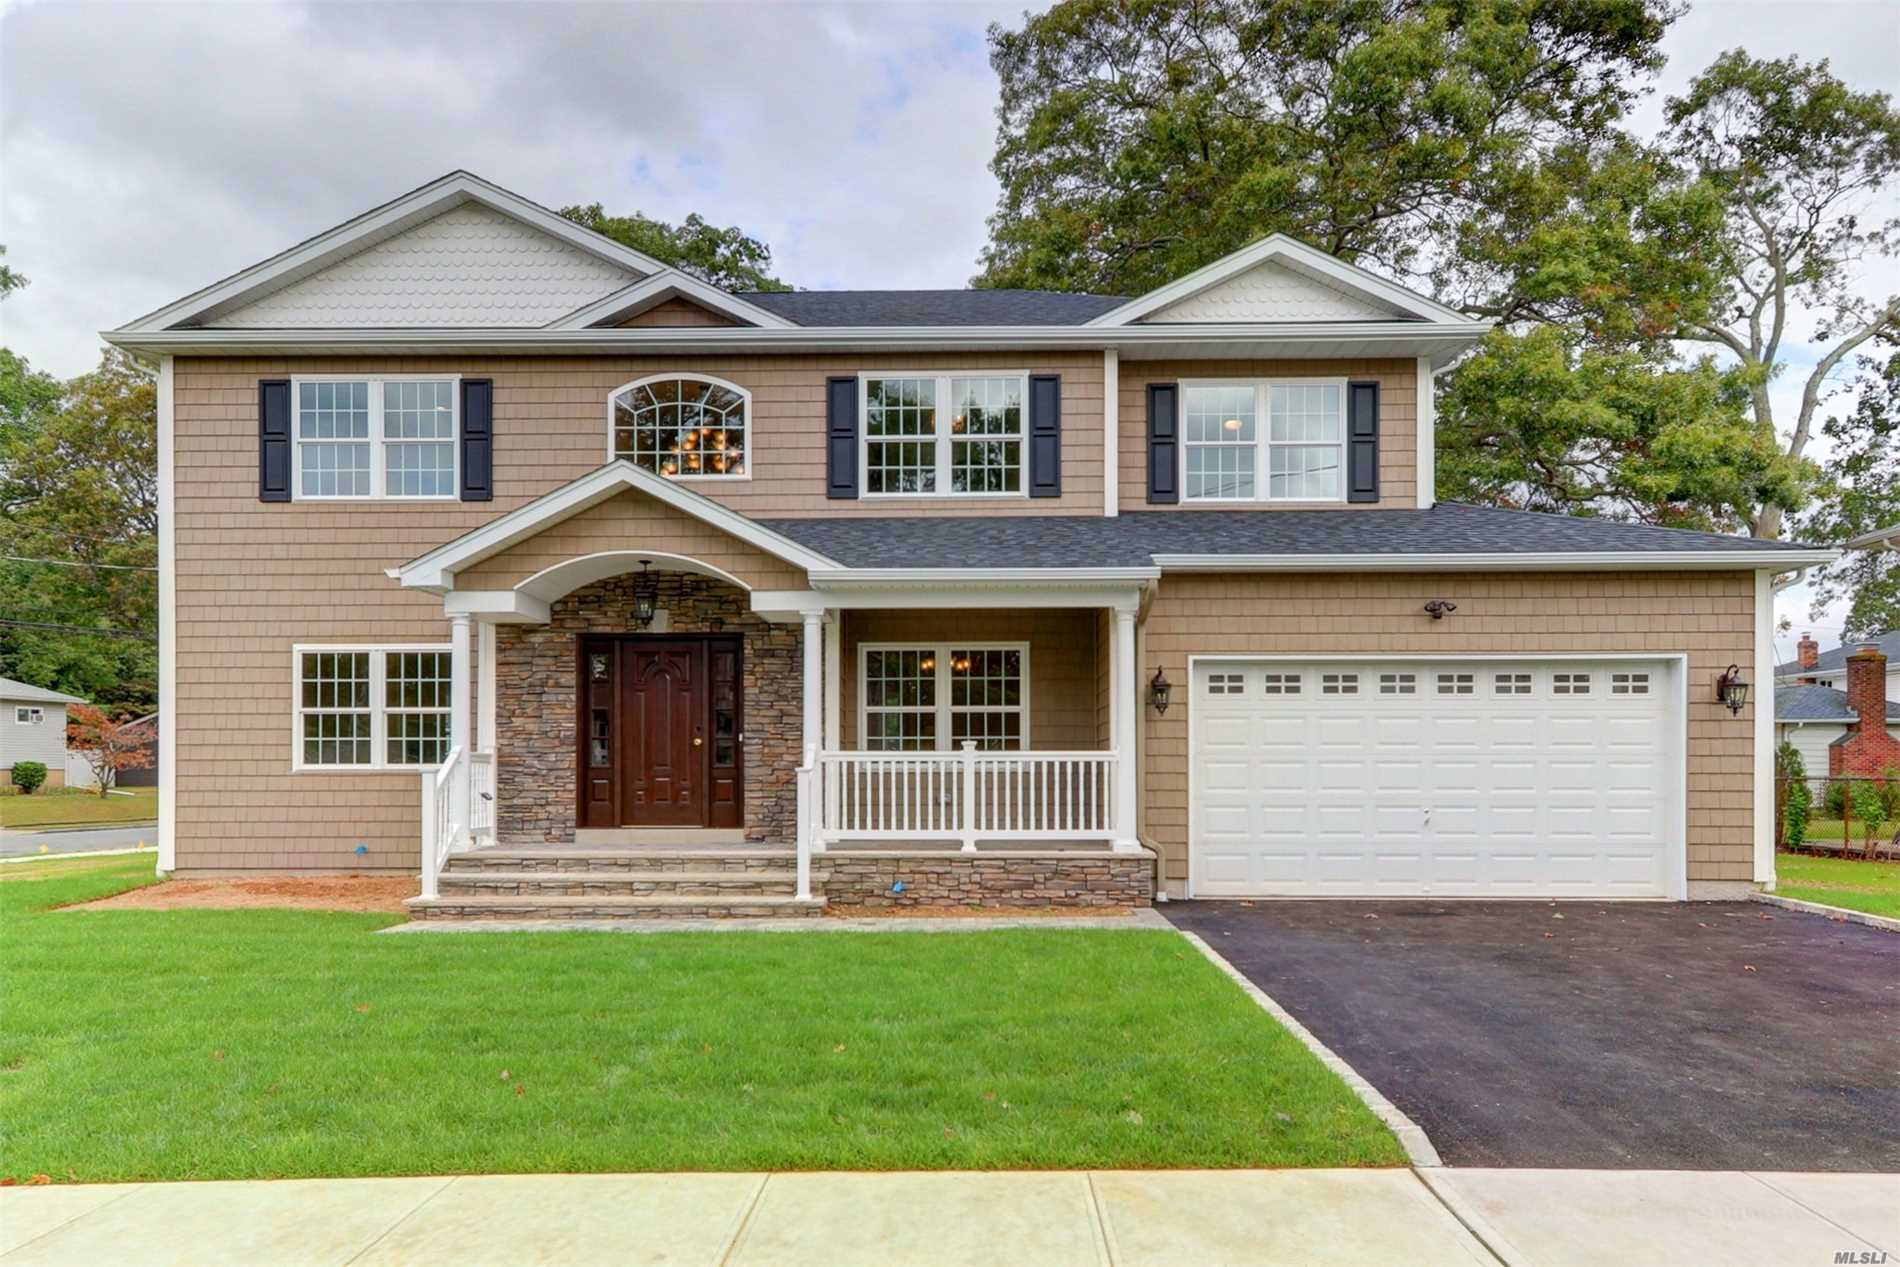 This Diamond Colonial Will Be Customized For You! Most Prominent Builder Spares No Expense! Beautiful O/S Property..Designer Kitchen/Granite/Cent Island/Ss Ge Profile Appl..Custom Baths..Crown Molding..Gleaming Hardwood Flrs..Family Room With Gas Frplc..Master Bedroom W 2/Wi Closets/Full Bath..Inground Sprinkler..Front Porch..2 Car Garage..2 Zone Cac/Hydronic Heat. All Pictures Are For Workmanship Only Perfect Time To Upgrade To Your Dream Home!